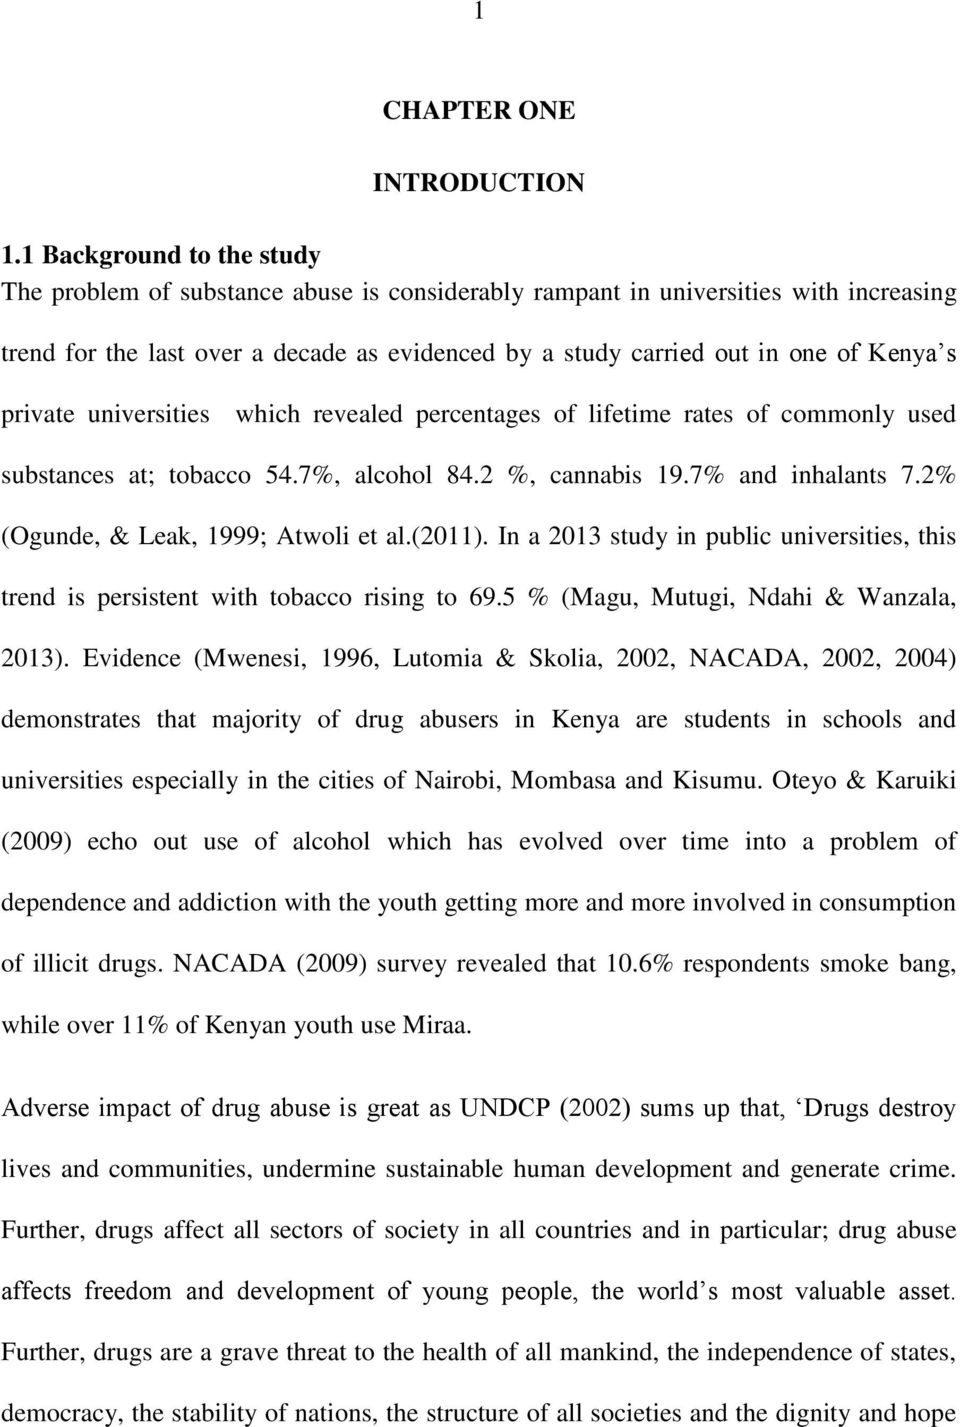 private universities which revealed percentages of lifetime rates of commonly used substances at; tobacco 54.7%, alcohol 84.2 %, cannabis 19.7% and inhalants 7.2% (Ogunde, & Leak, 1999; Atwoli et al.